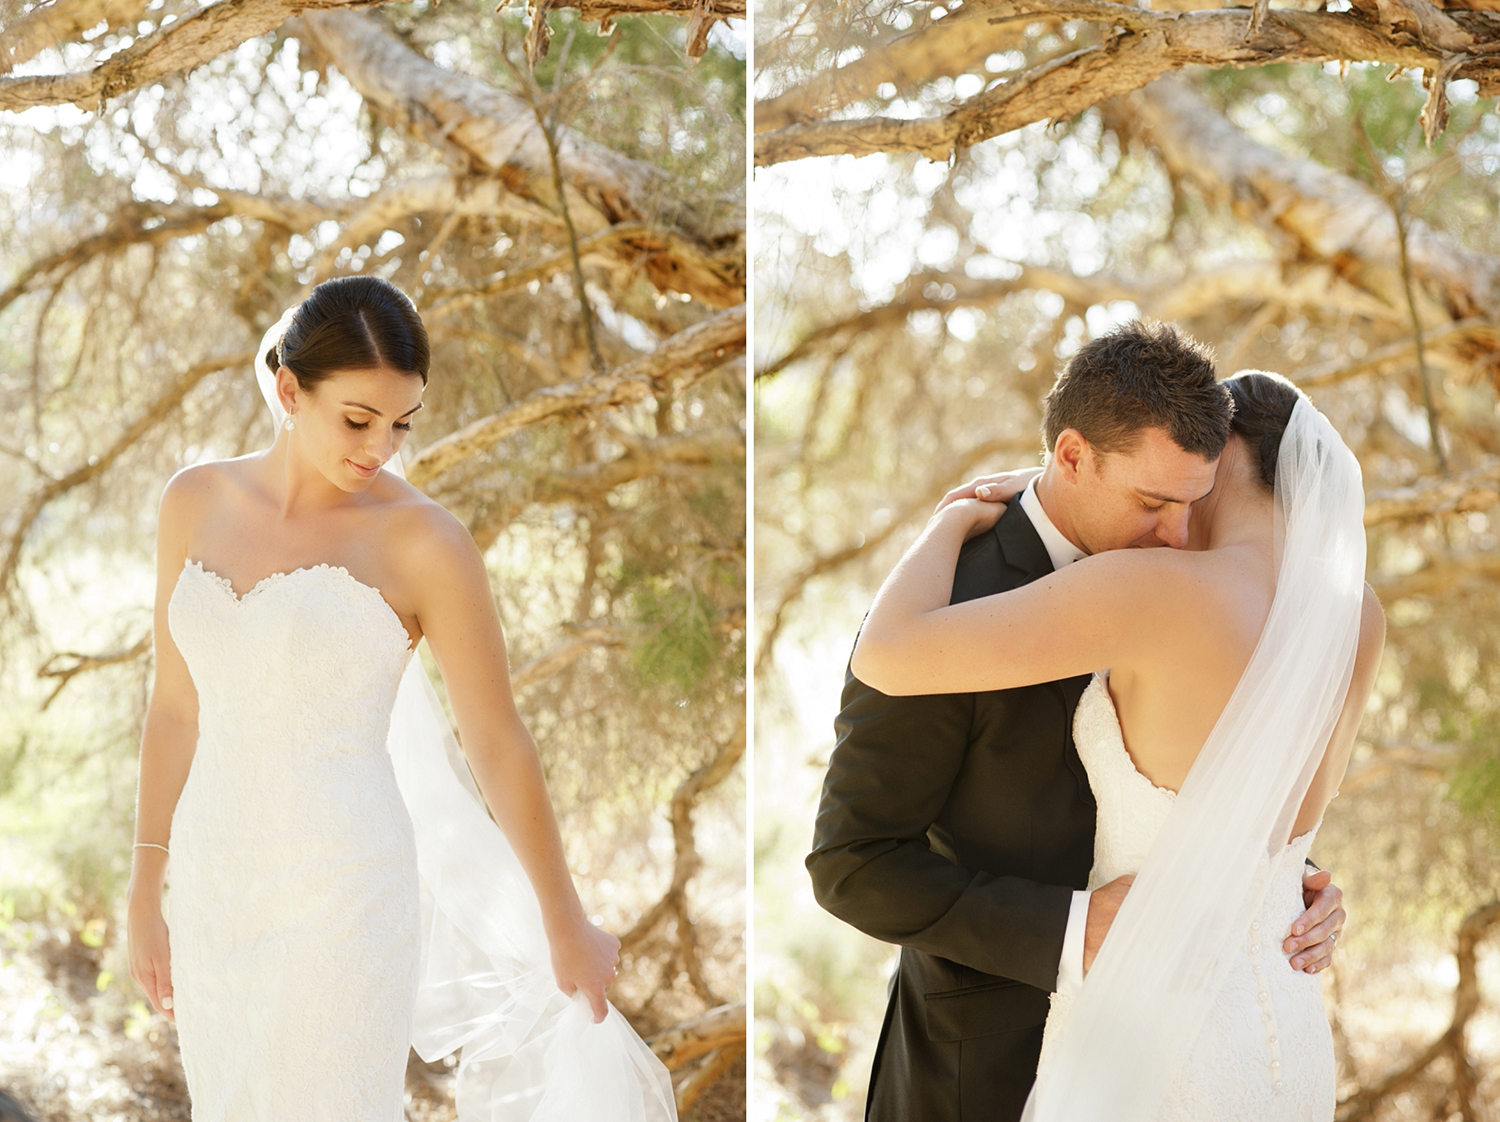 star swamp best perth wedding photography locations